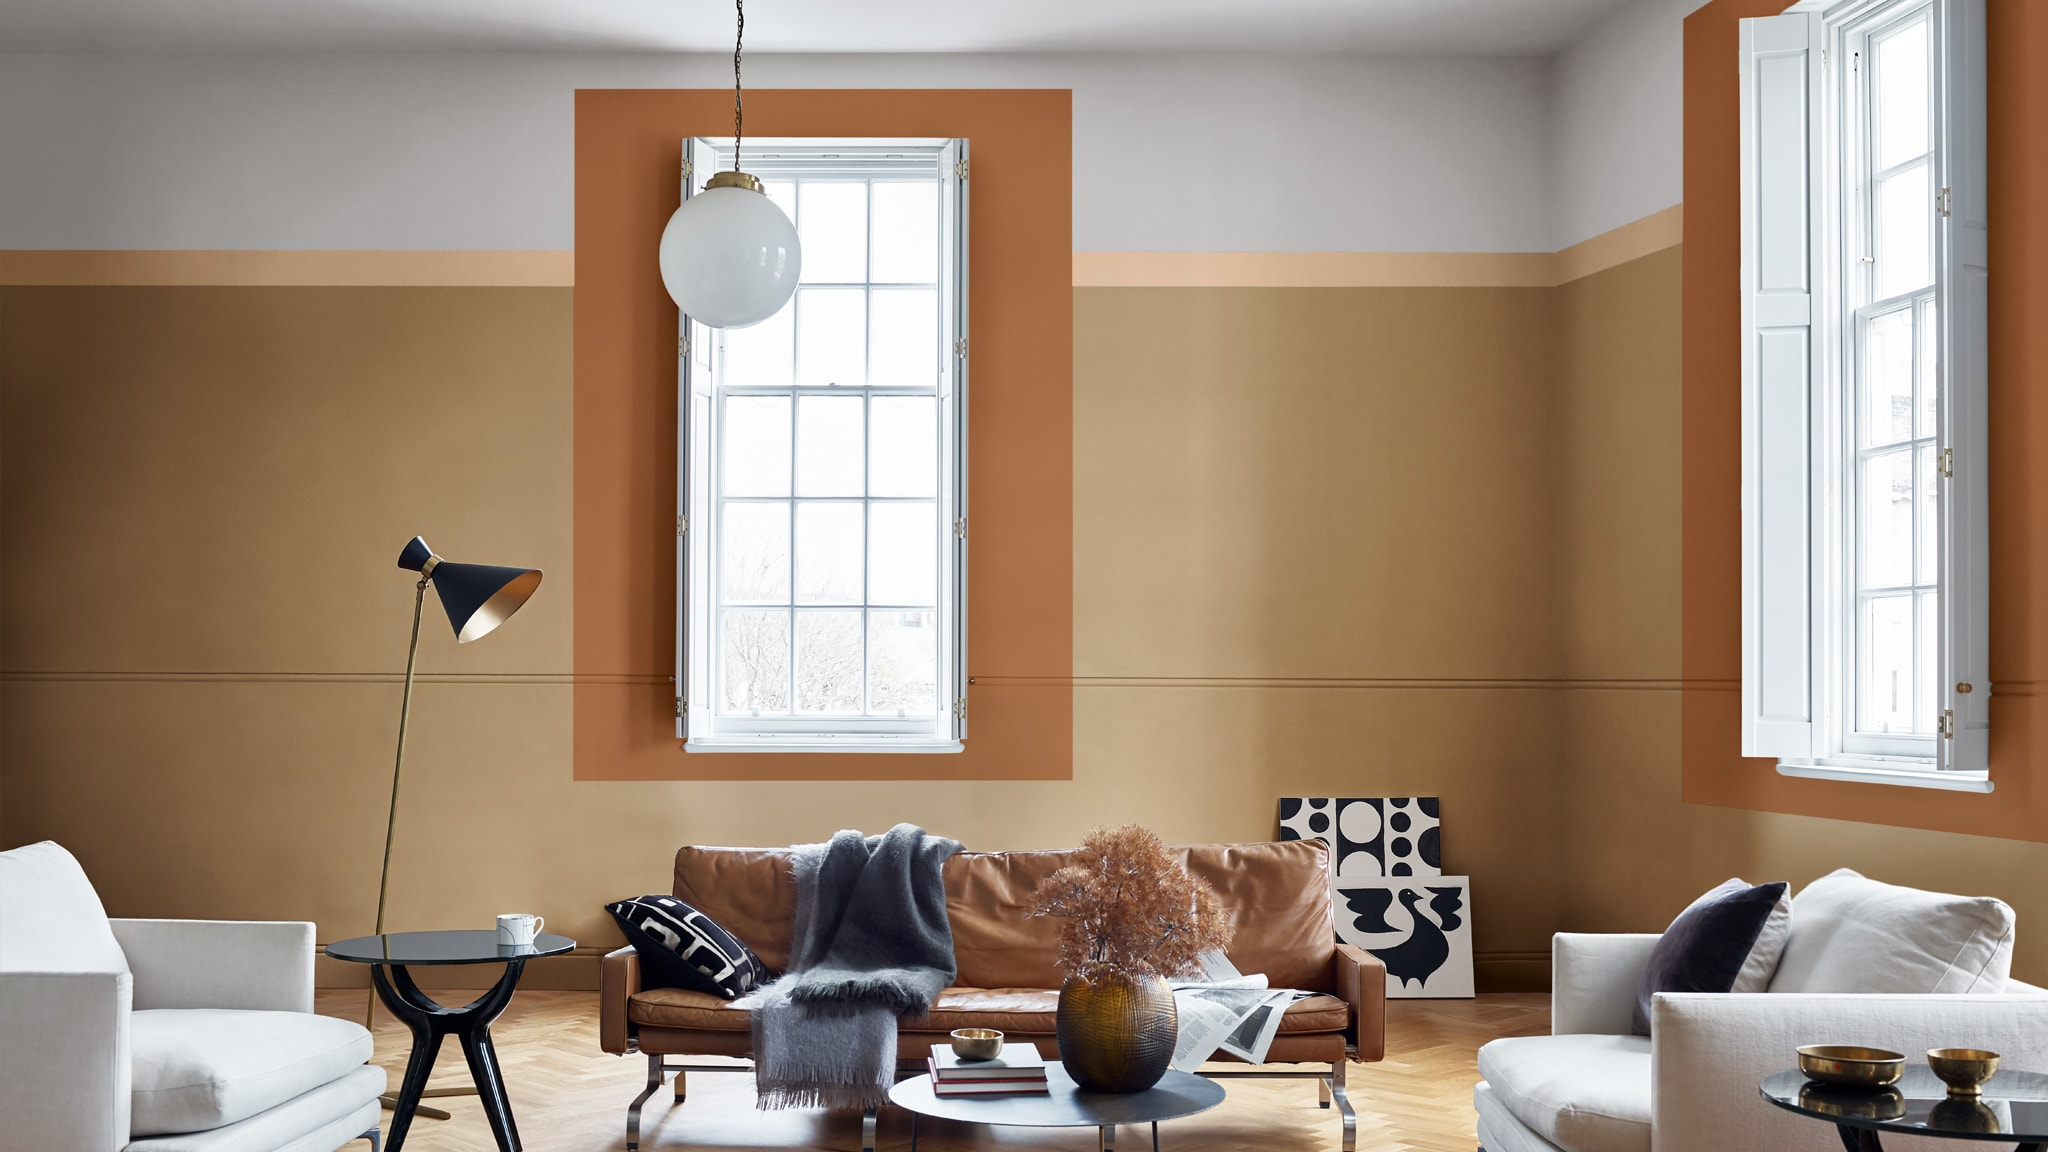 Deco-Paints-Colour-Futures-Colour-of-the-Year-2019-A-place-to-think-Livingroom-Inspiration-21